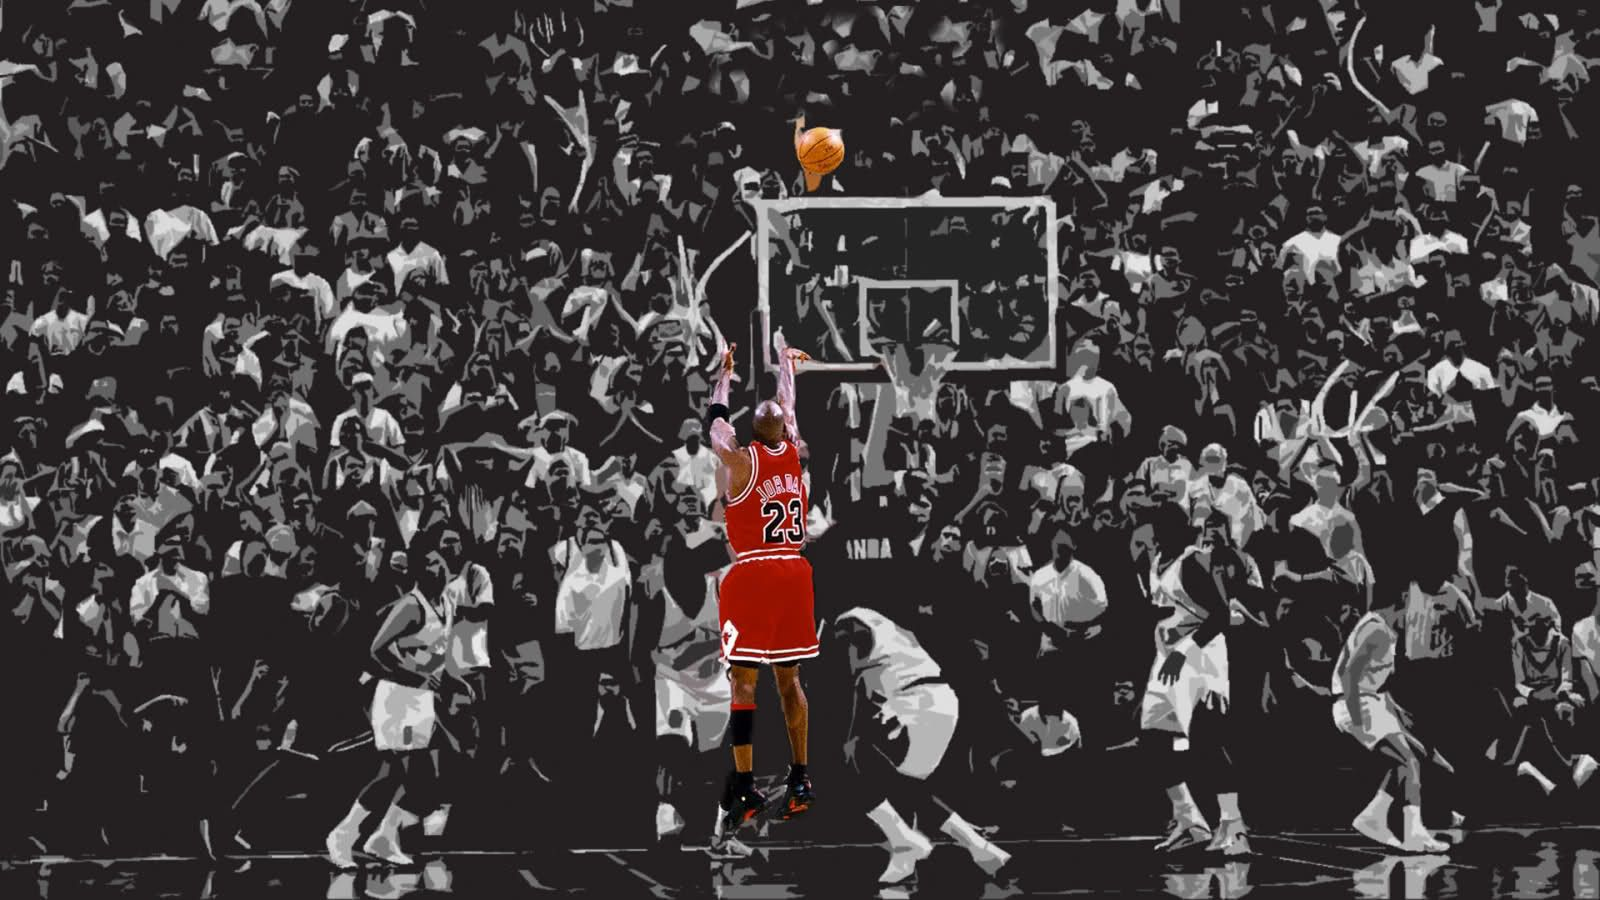 Pin By Stephanie On Basketball Wallpaper In 2020 Michael Jordan Jordan Logo Wallpaper Jordan Background